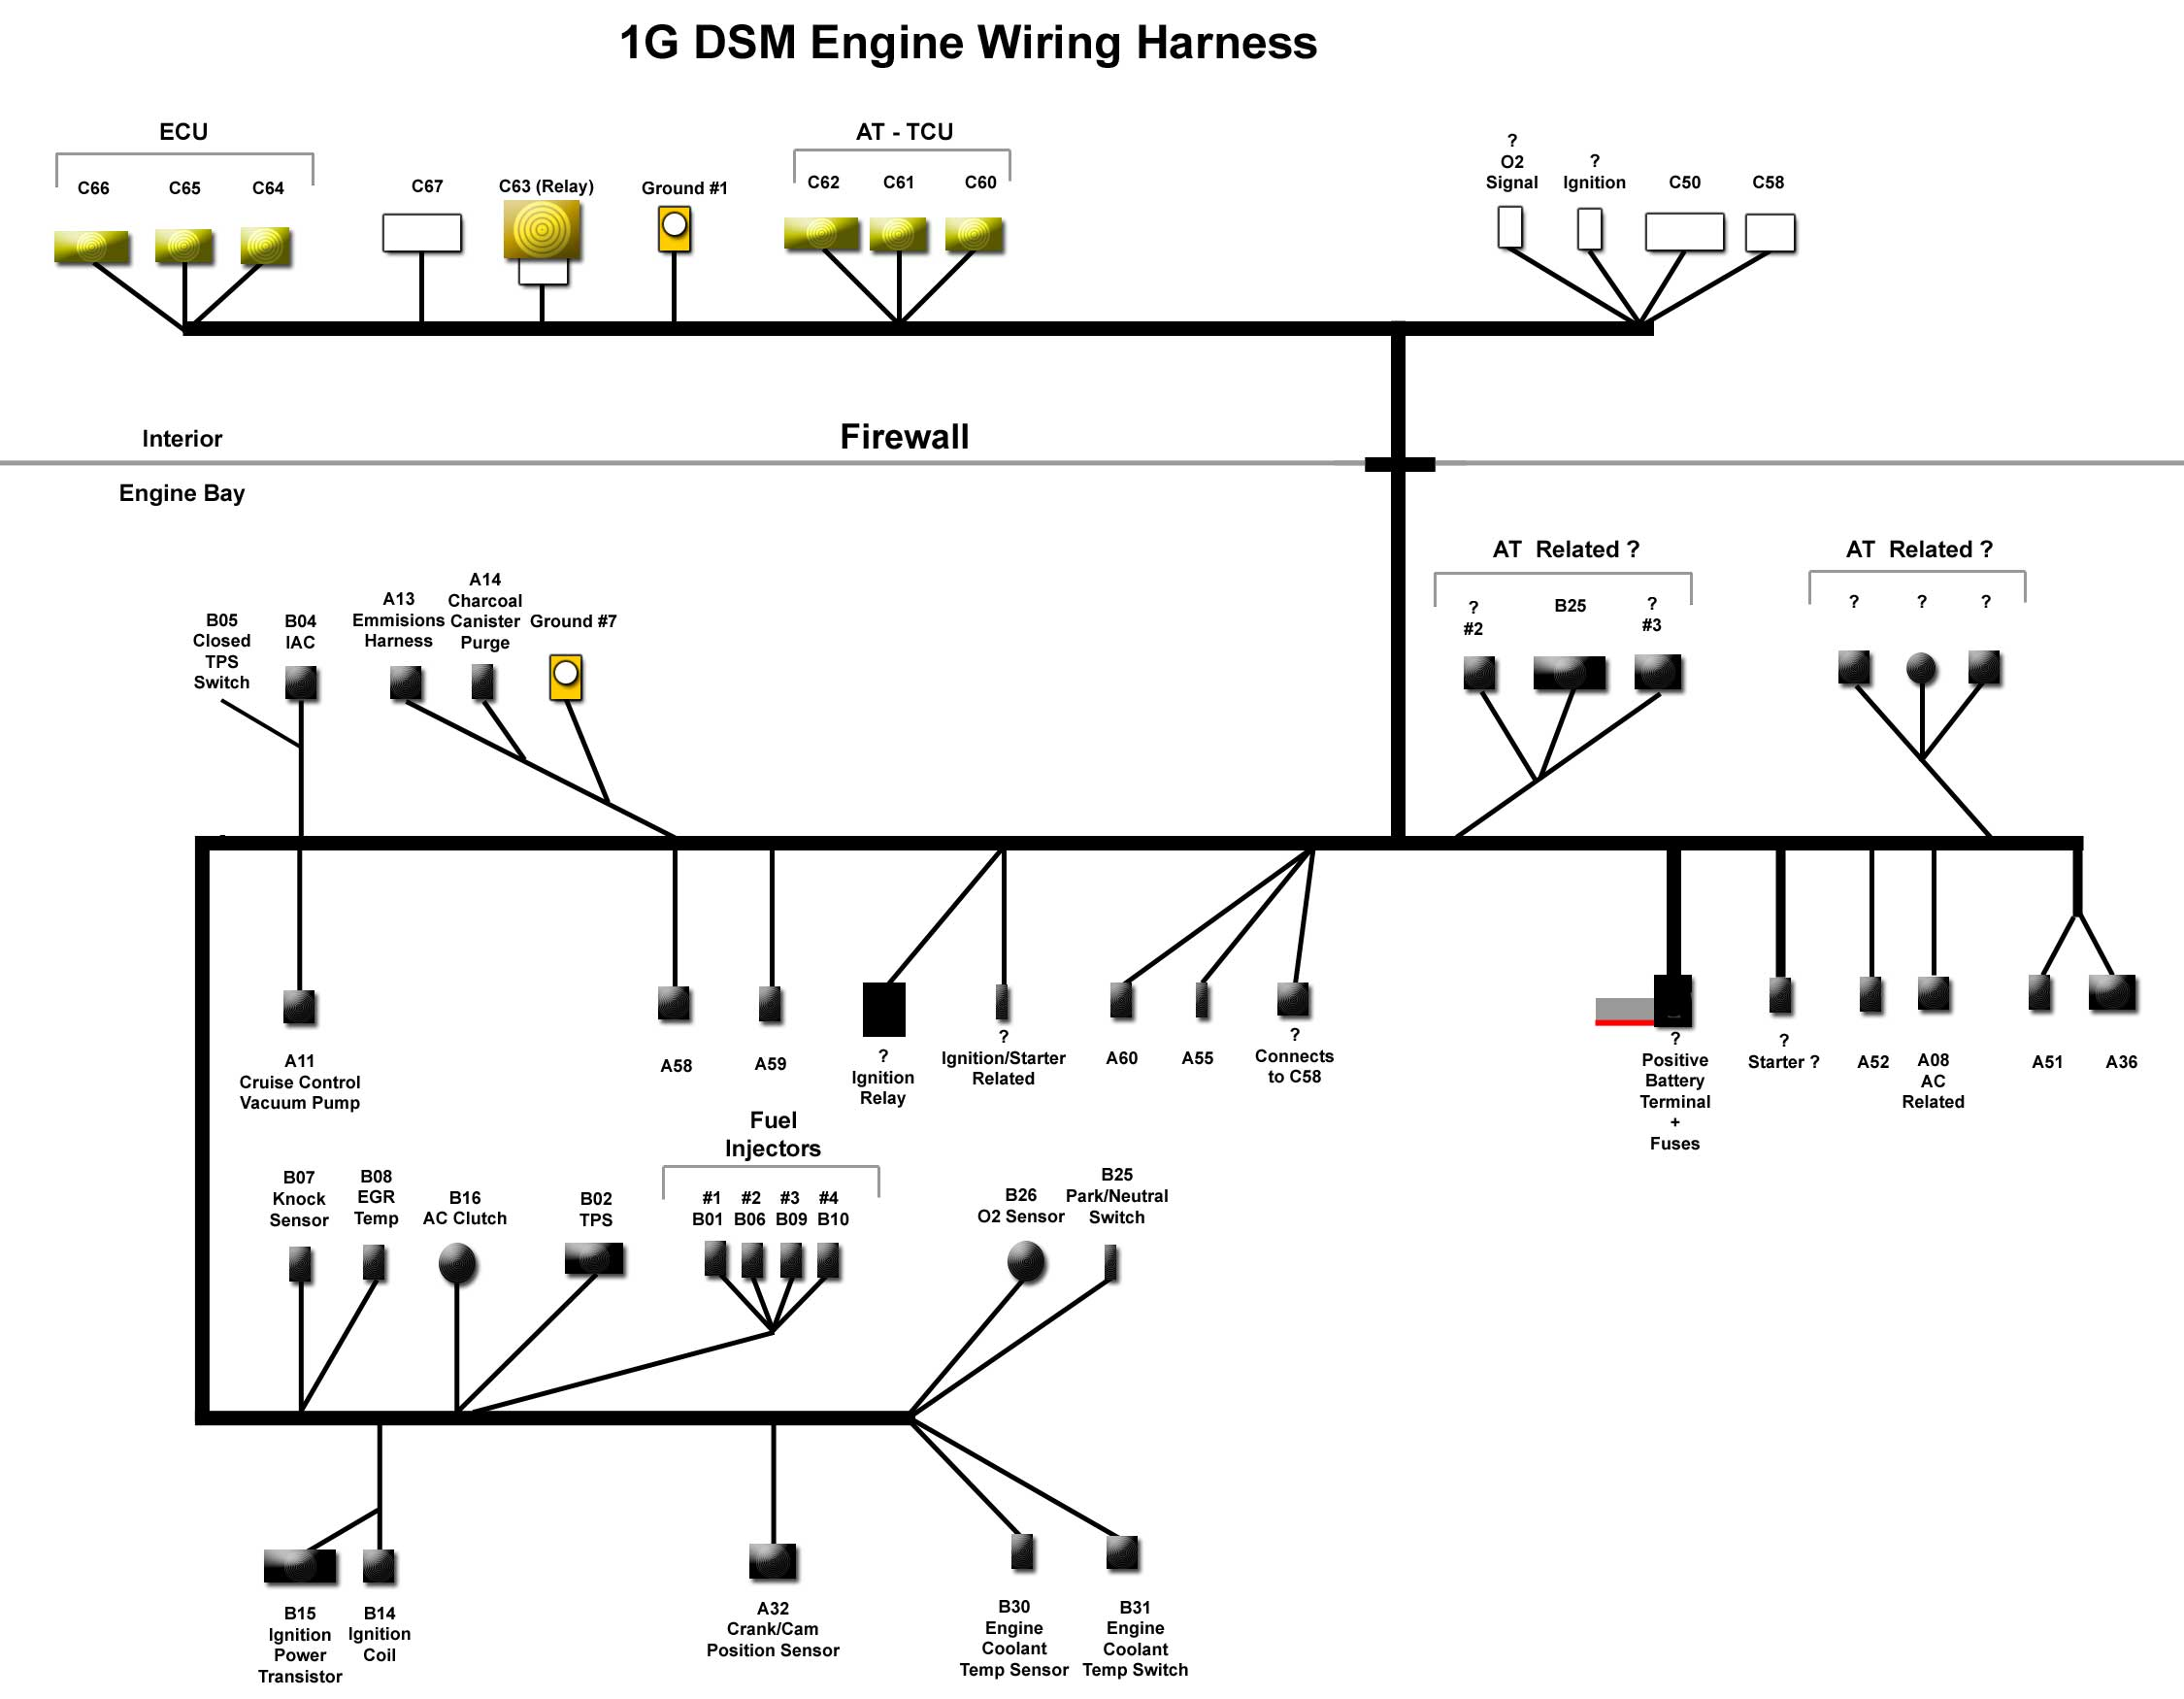 1G DSM EngineHarness wiring loom diagram 1 2wire loom \u2022 wiring diagrams j squared co engine wiring harness diagram at gsmportal.co